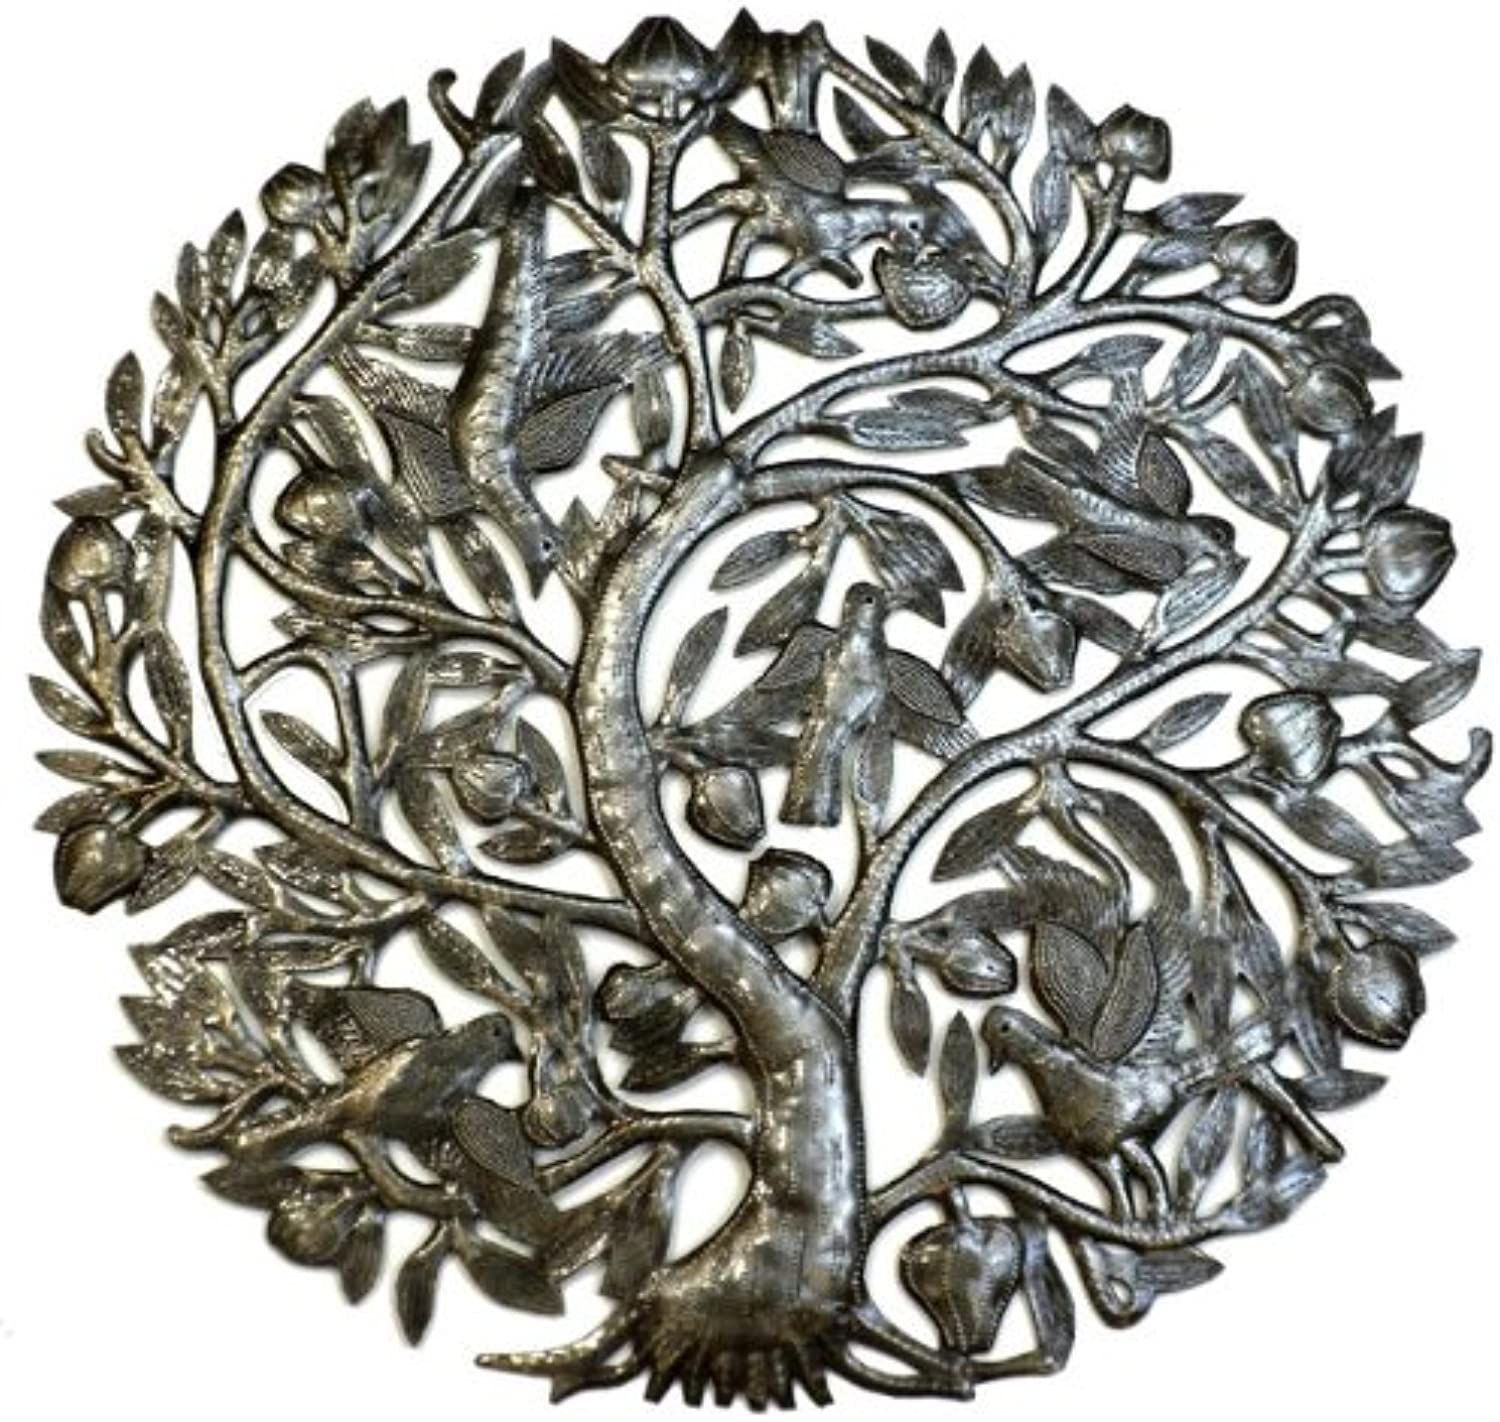 Global Crafts 24  Recycled Handmade Haitian Metal Wall Art Tree of Life with Birds, Birds and Buds